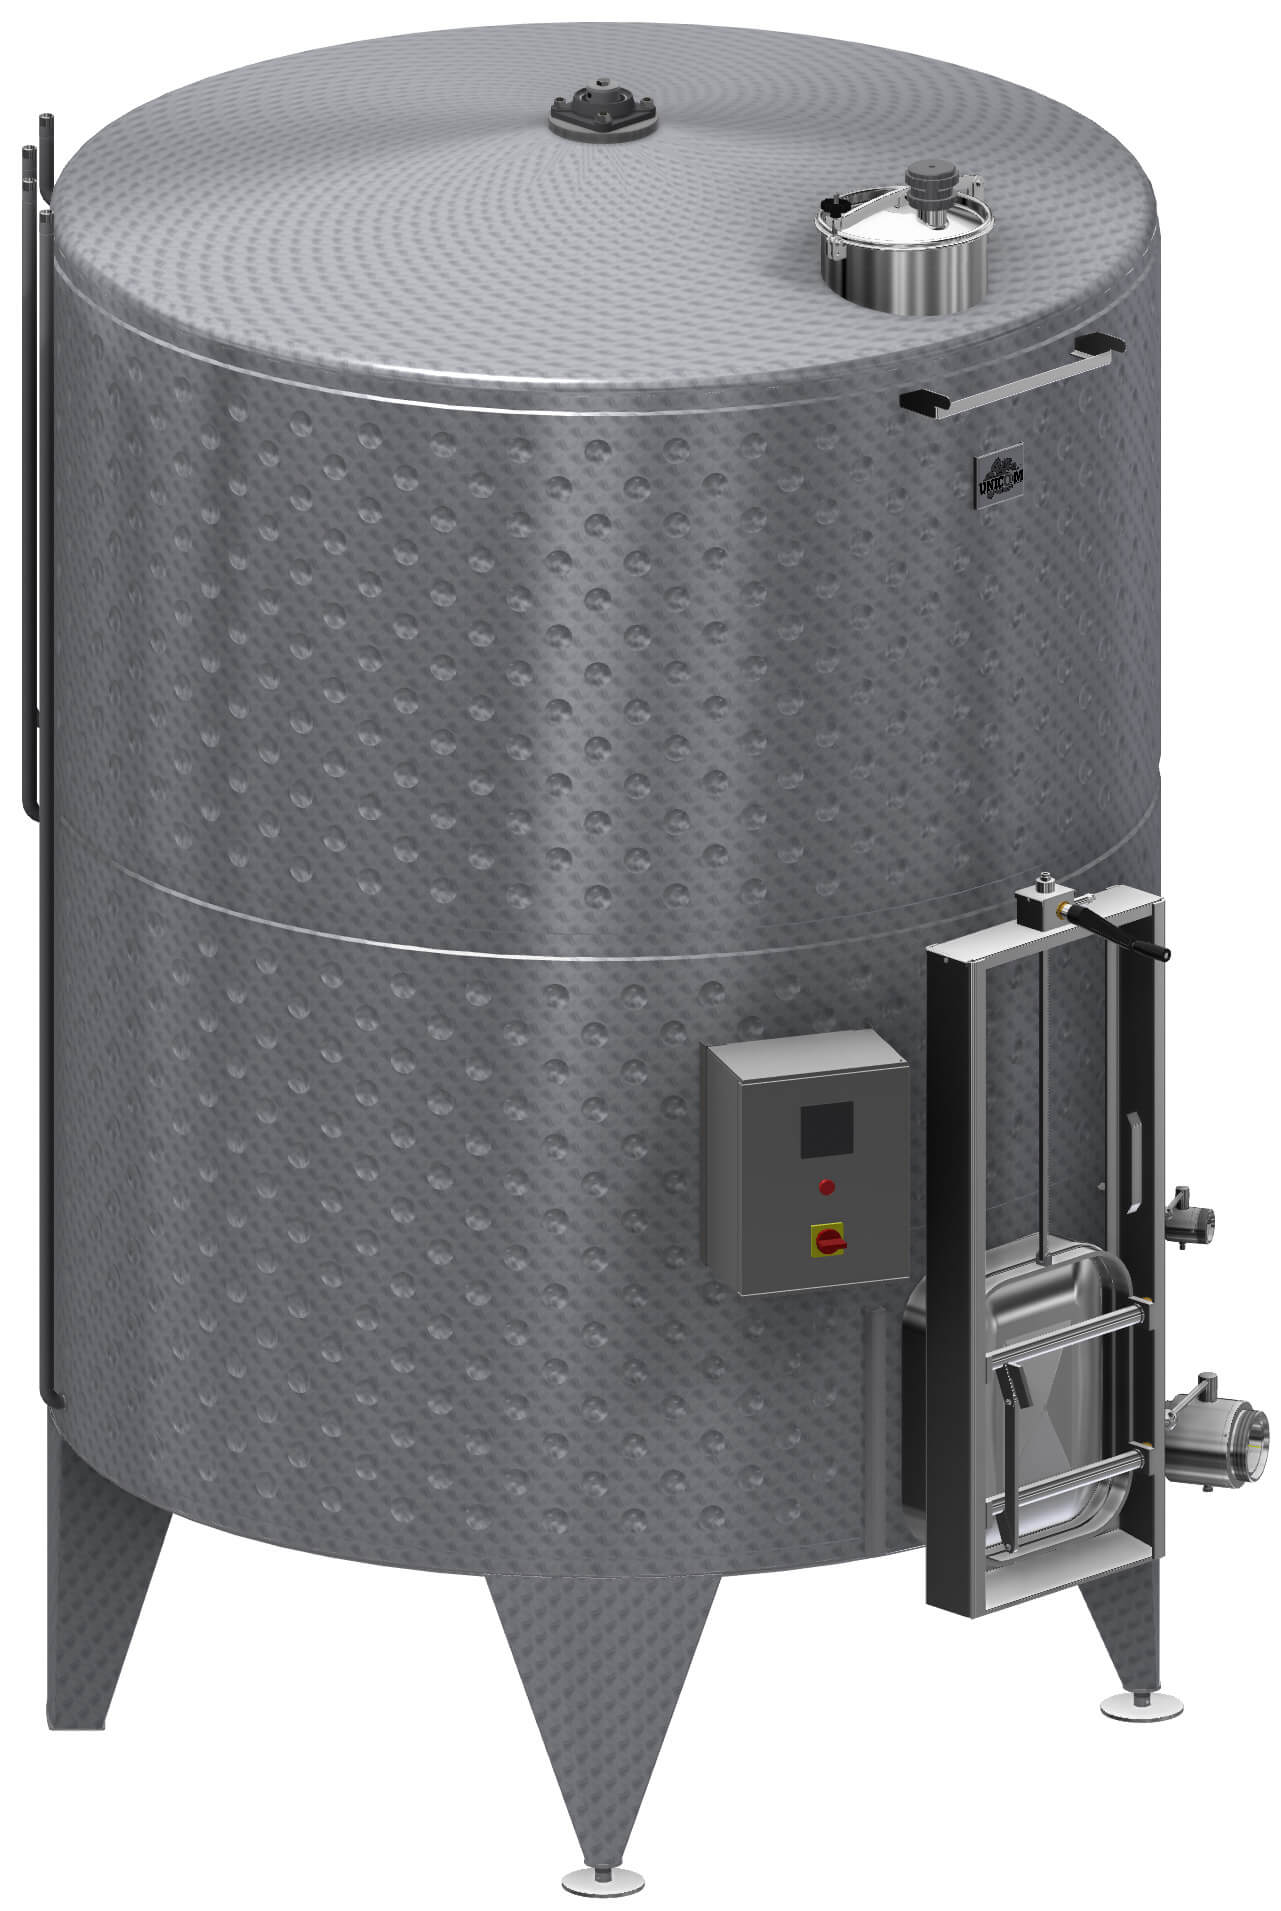 Maceration tanks